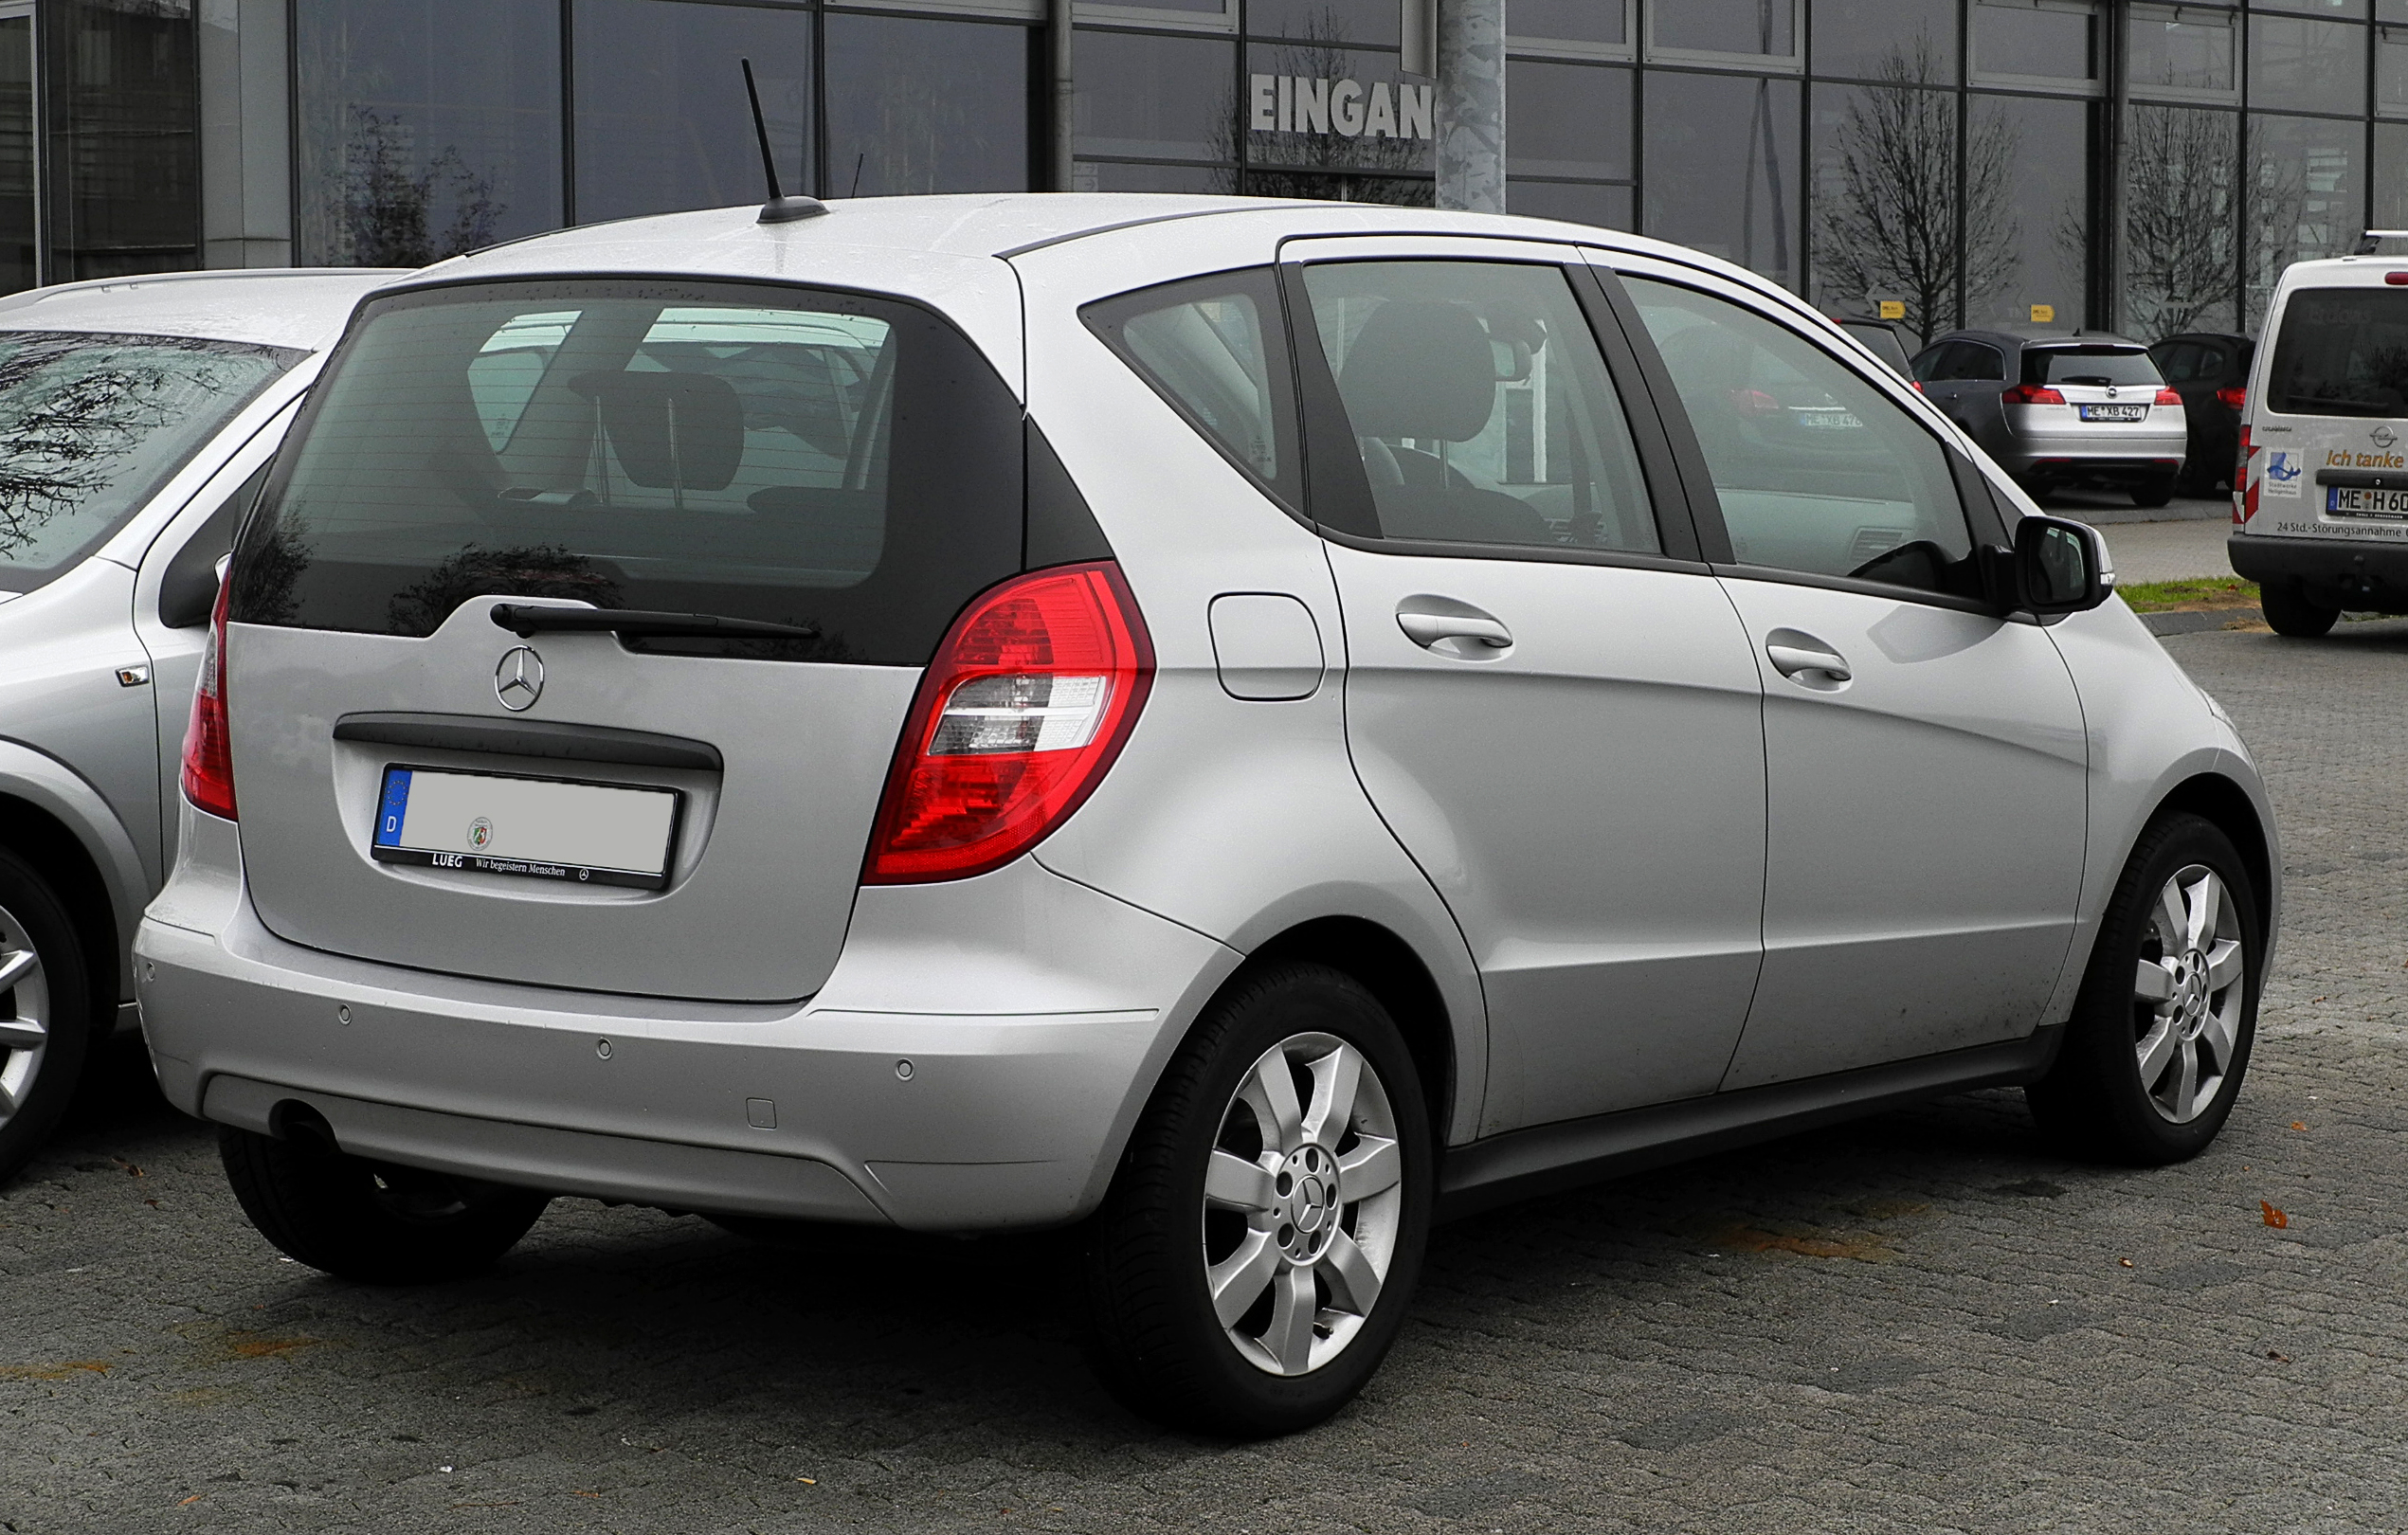 Mercedes-benz a160 photo - 4